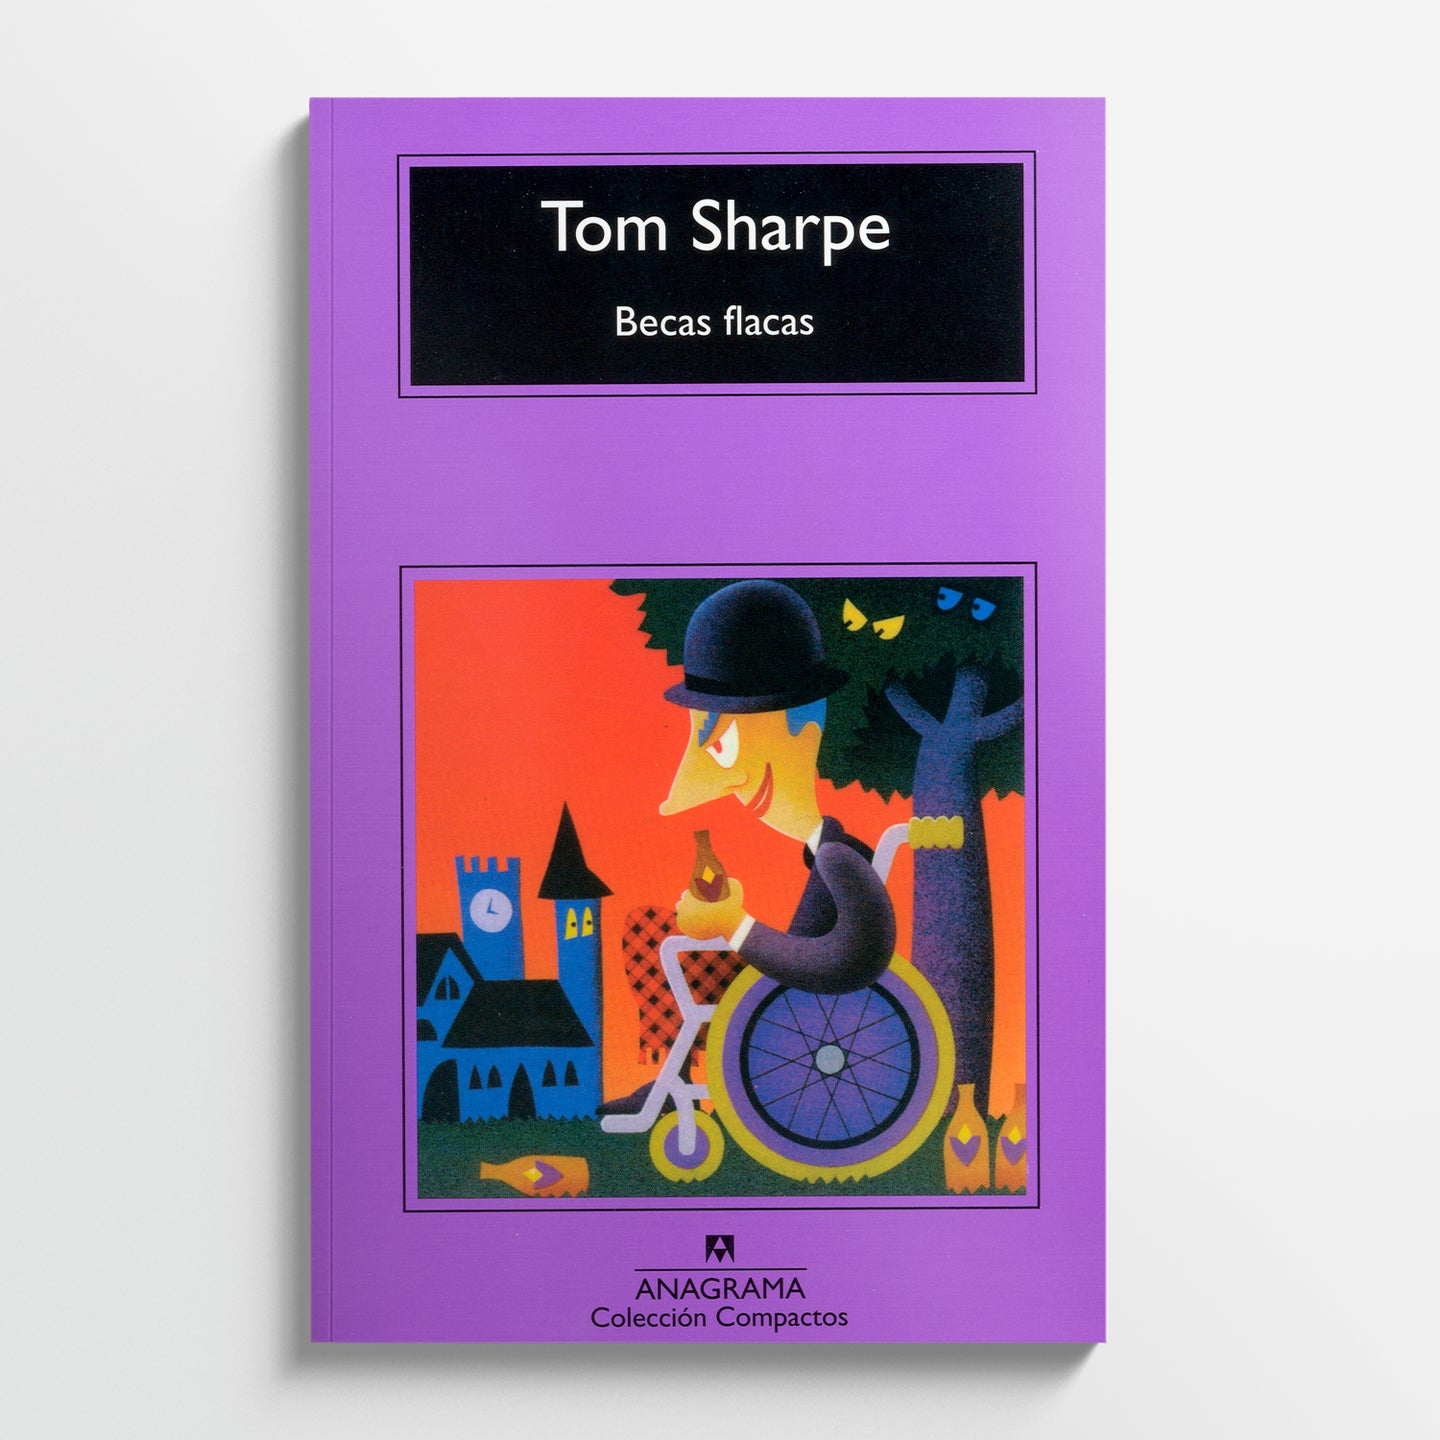 TOM SHARPE | Becas flacas